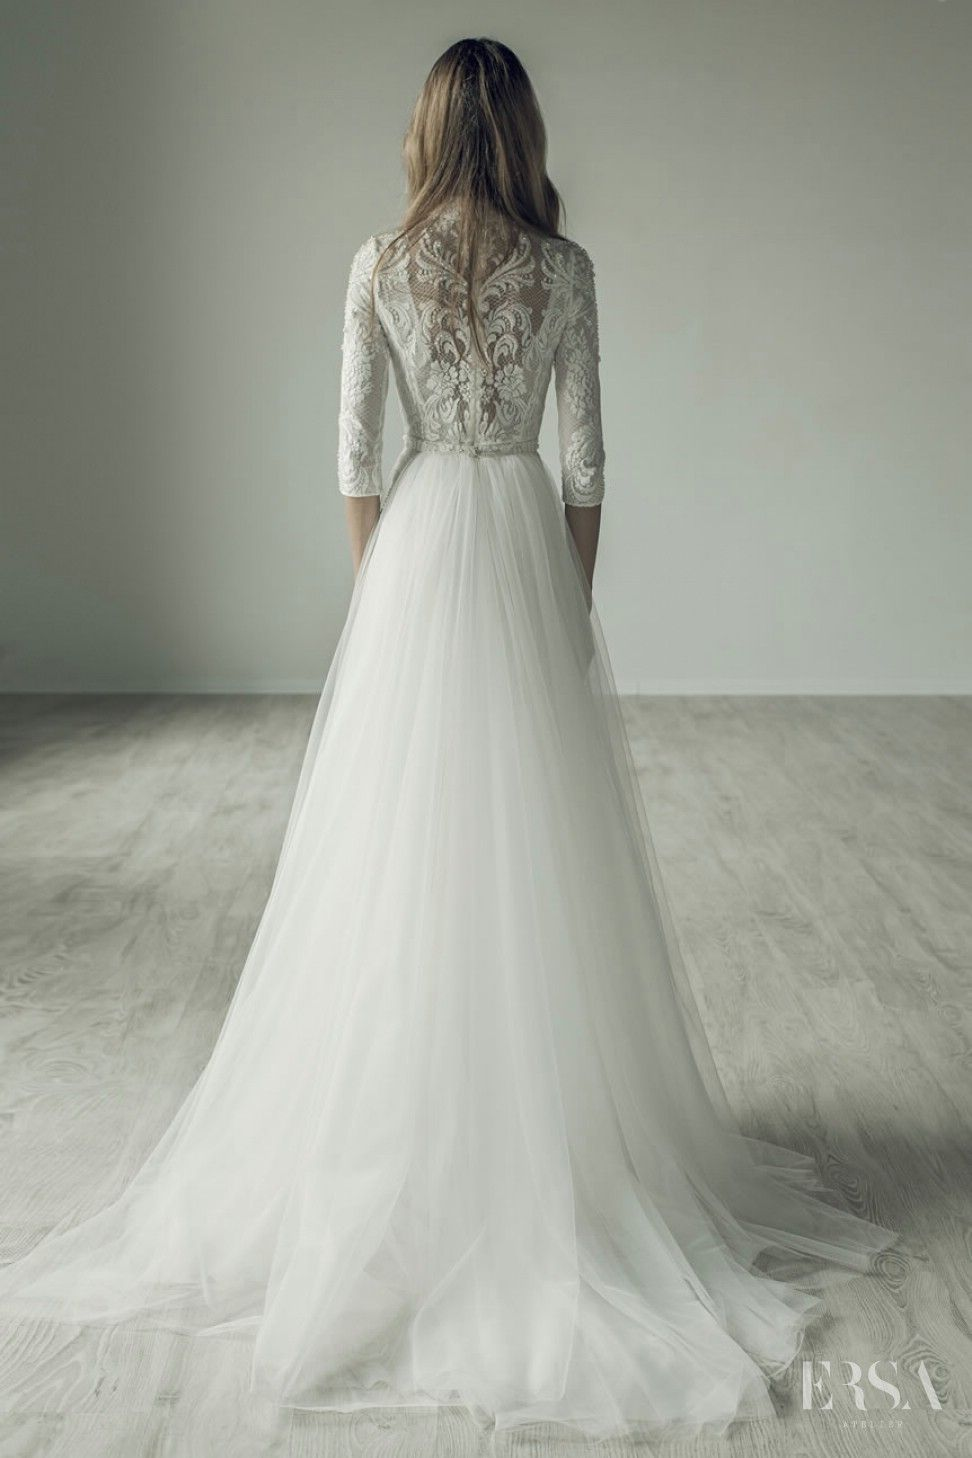 Ersa atelier wedding collection lovely bride pinterest